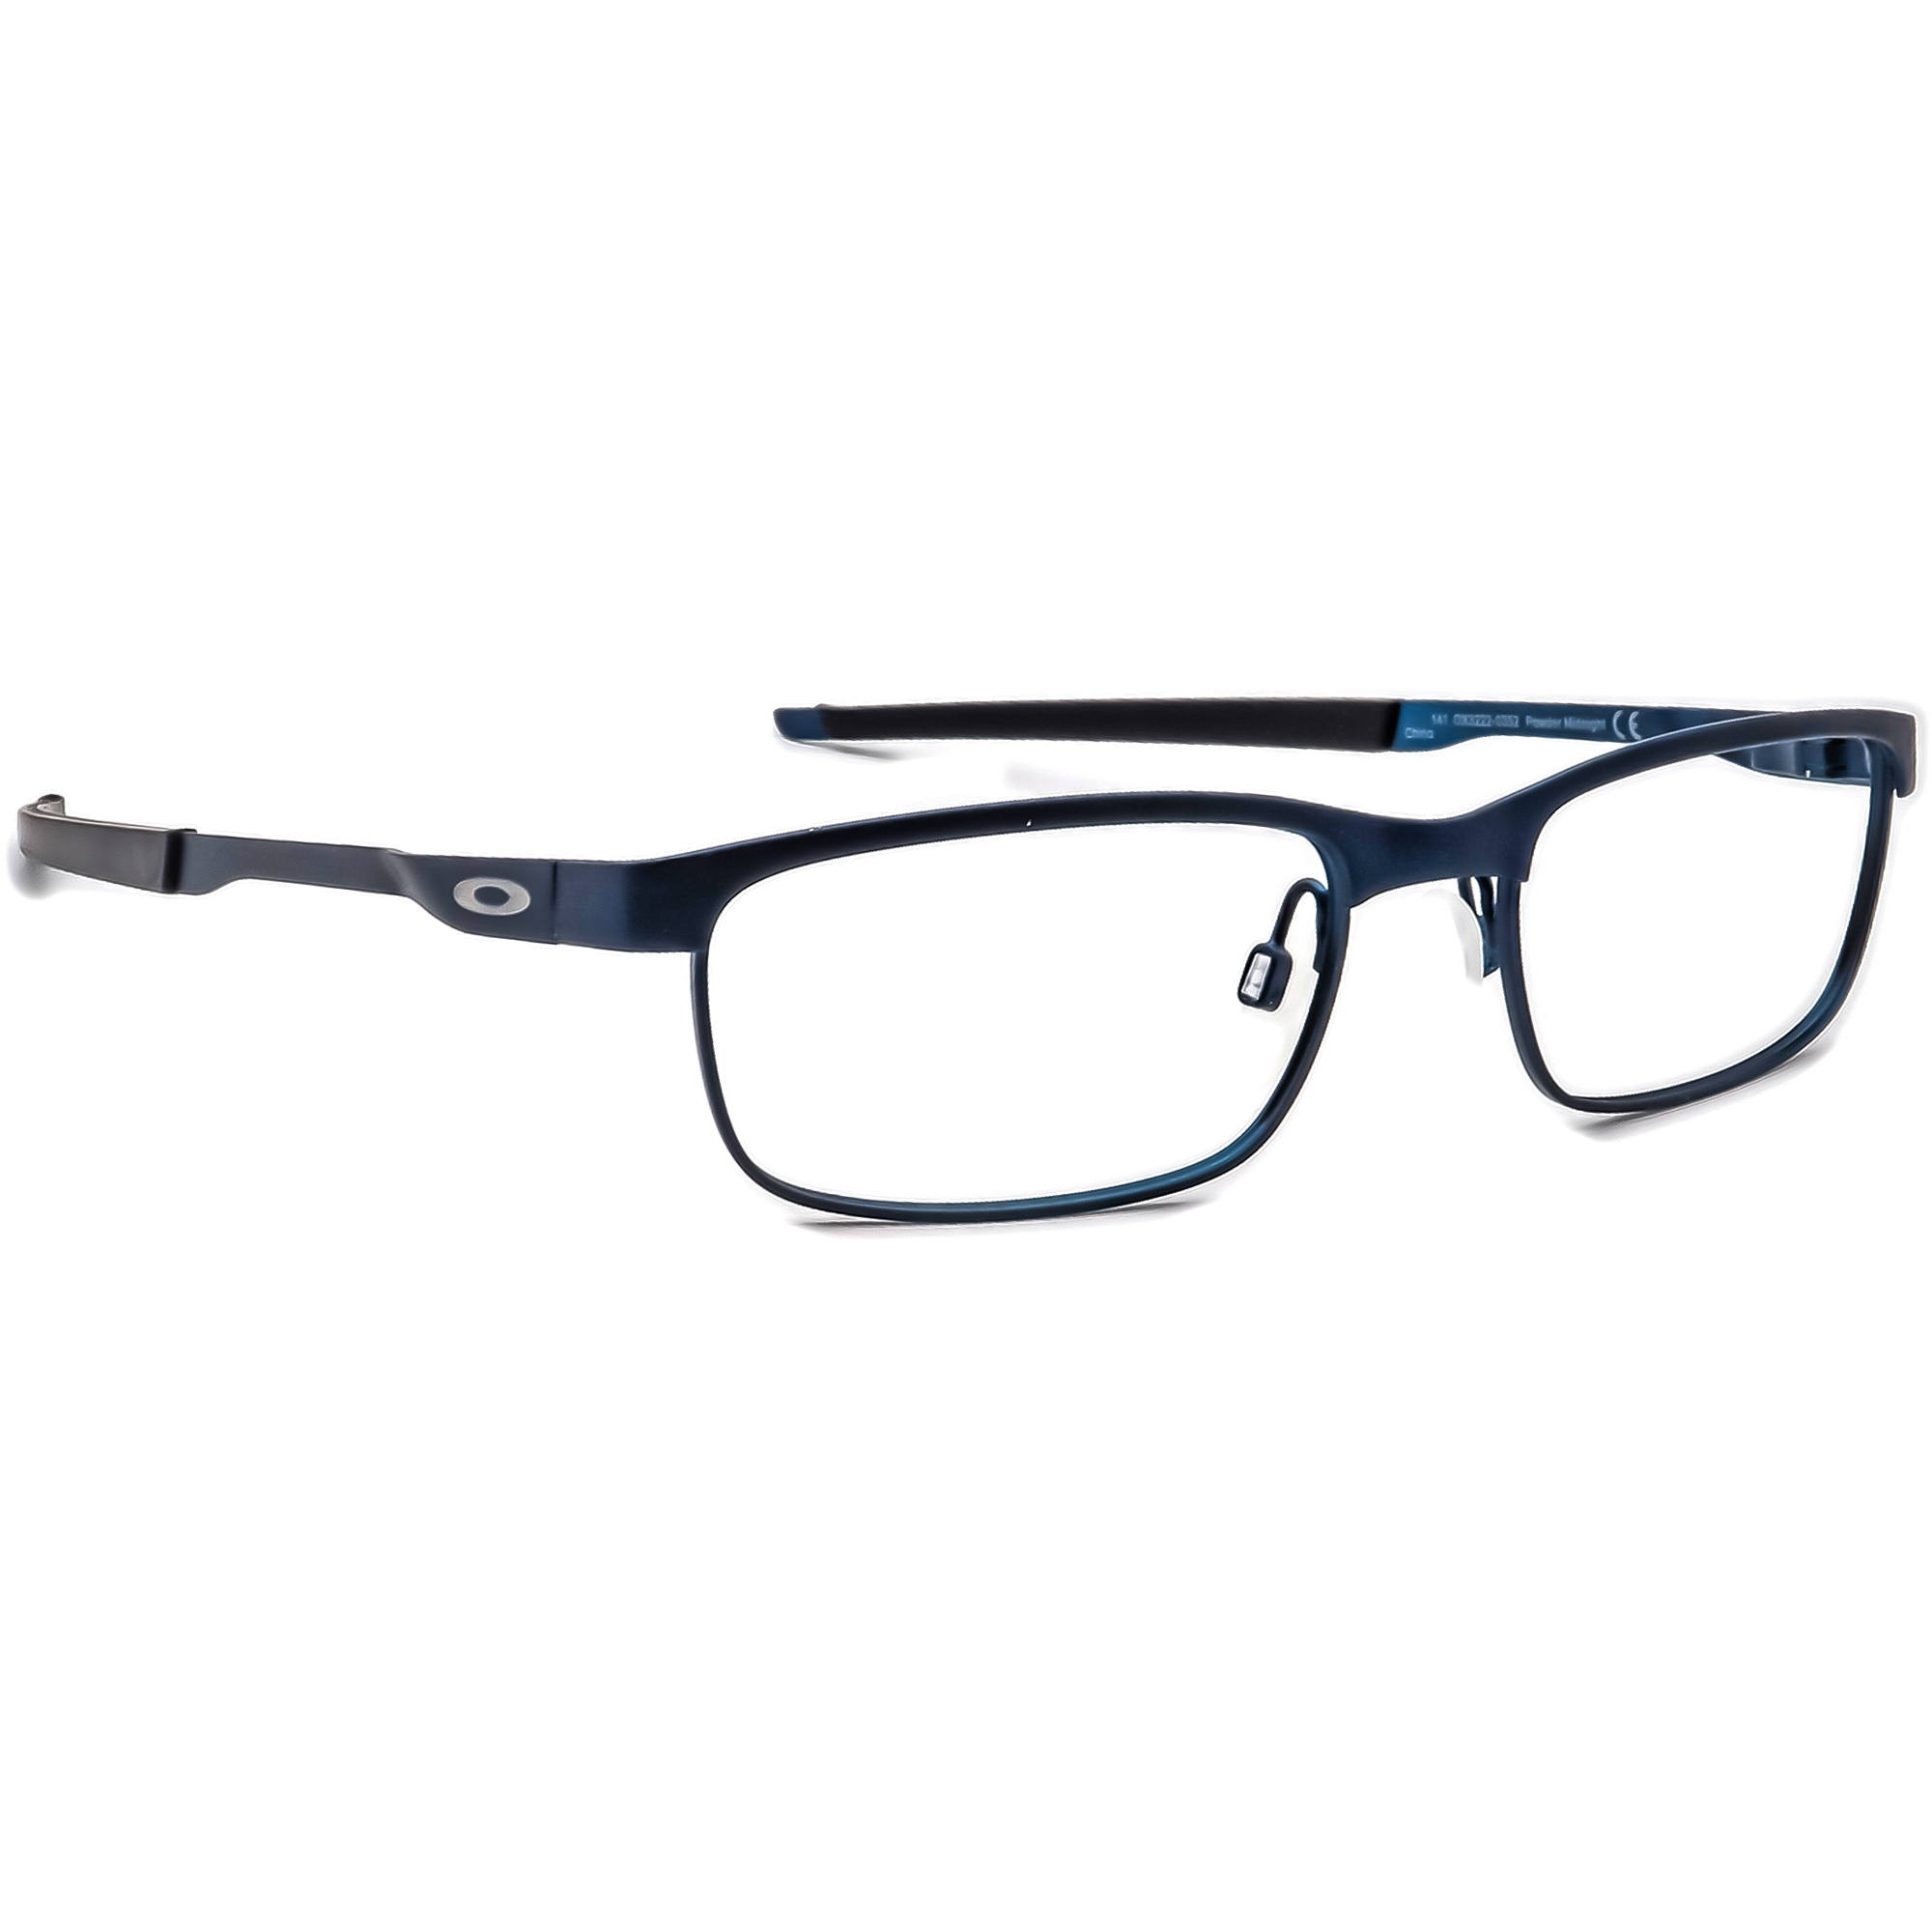 Oakley OX3222-0352 Steel Plate Eyeglasses